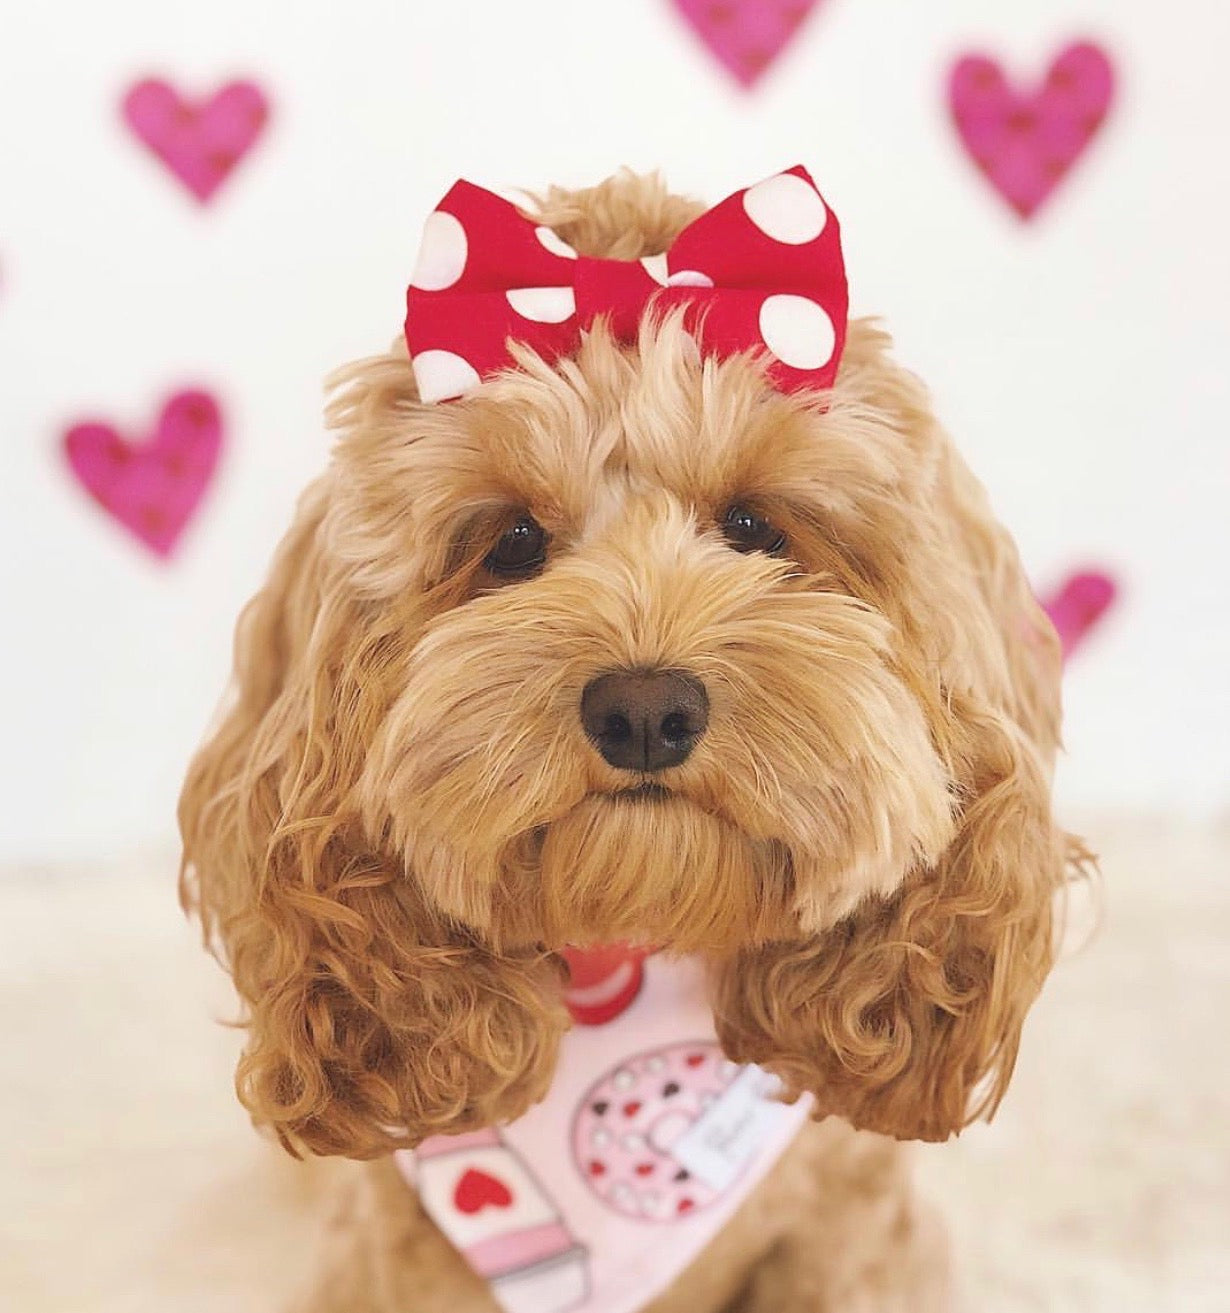 8 Instagram Dogs That Should Be the Bachelorette | Blog | Gift Spawt